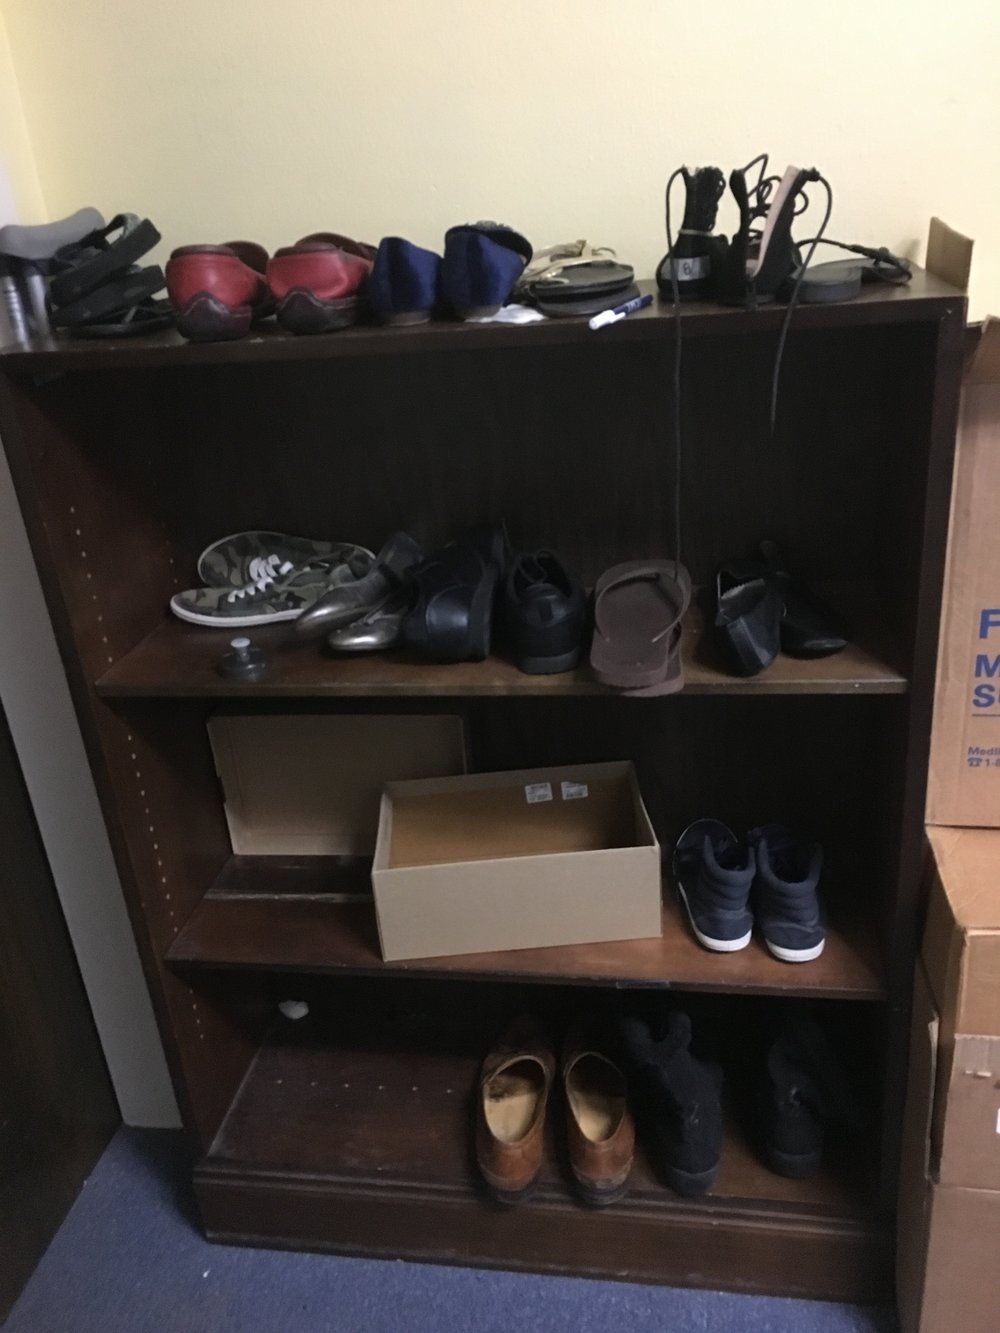 These are the only shoes they have left.